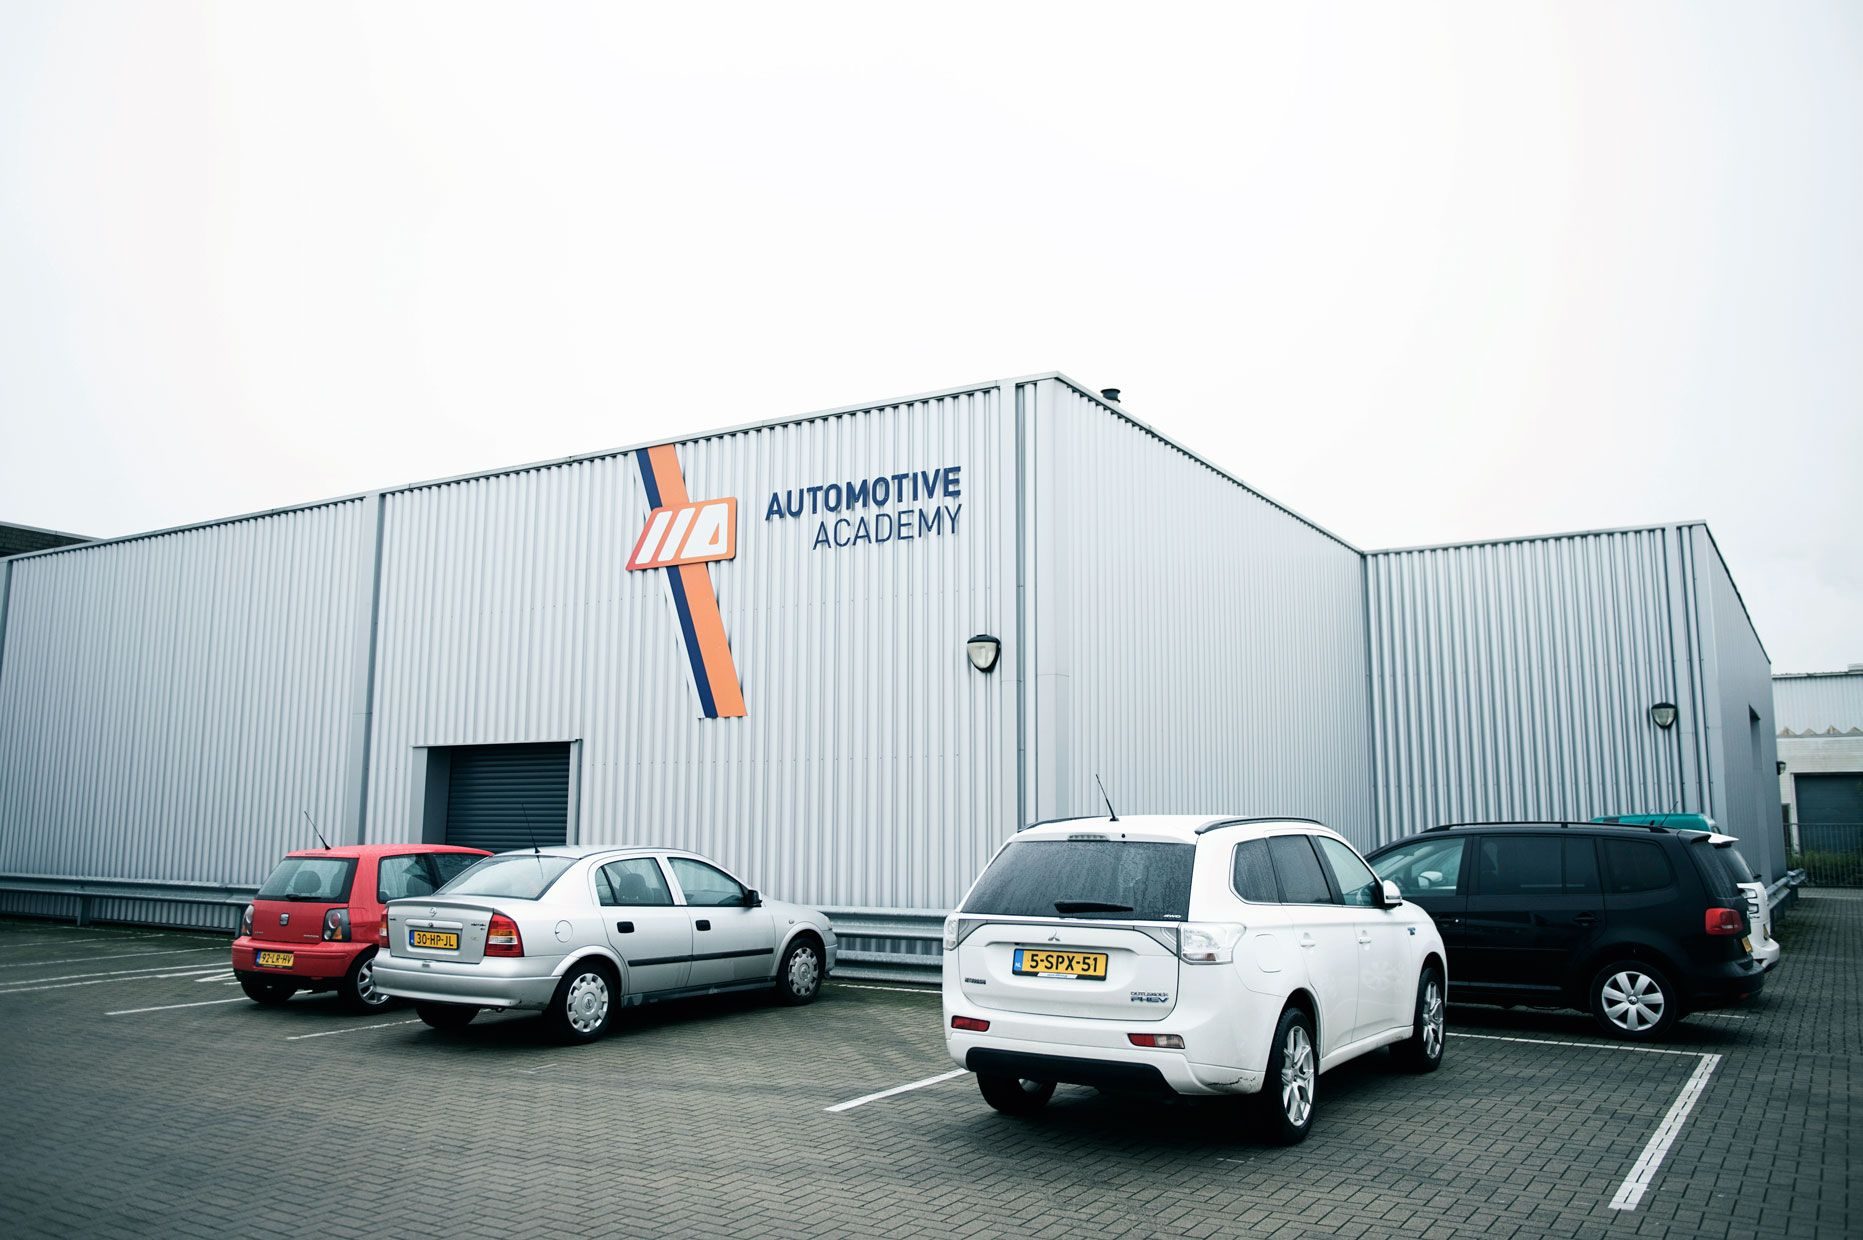 Automotive Academy Hoensbroek